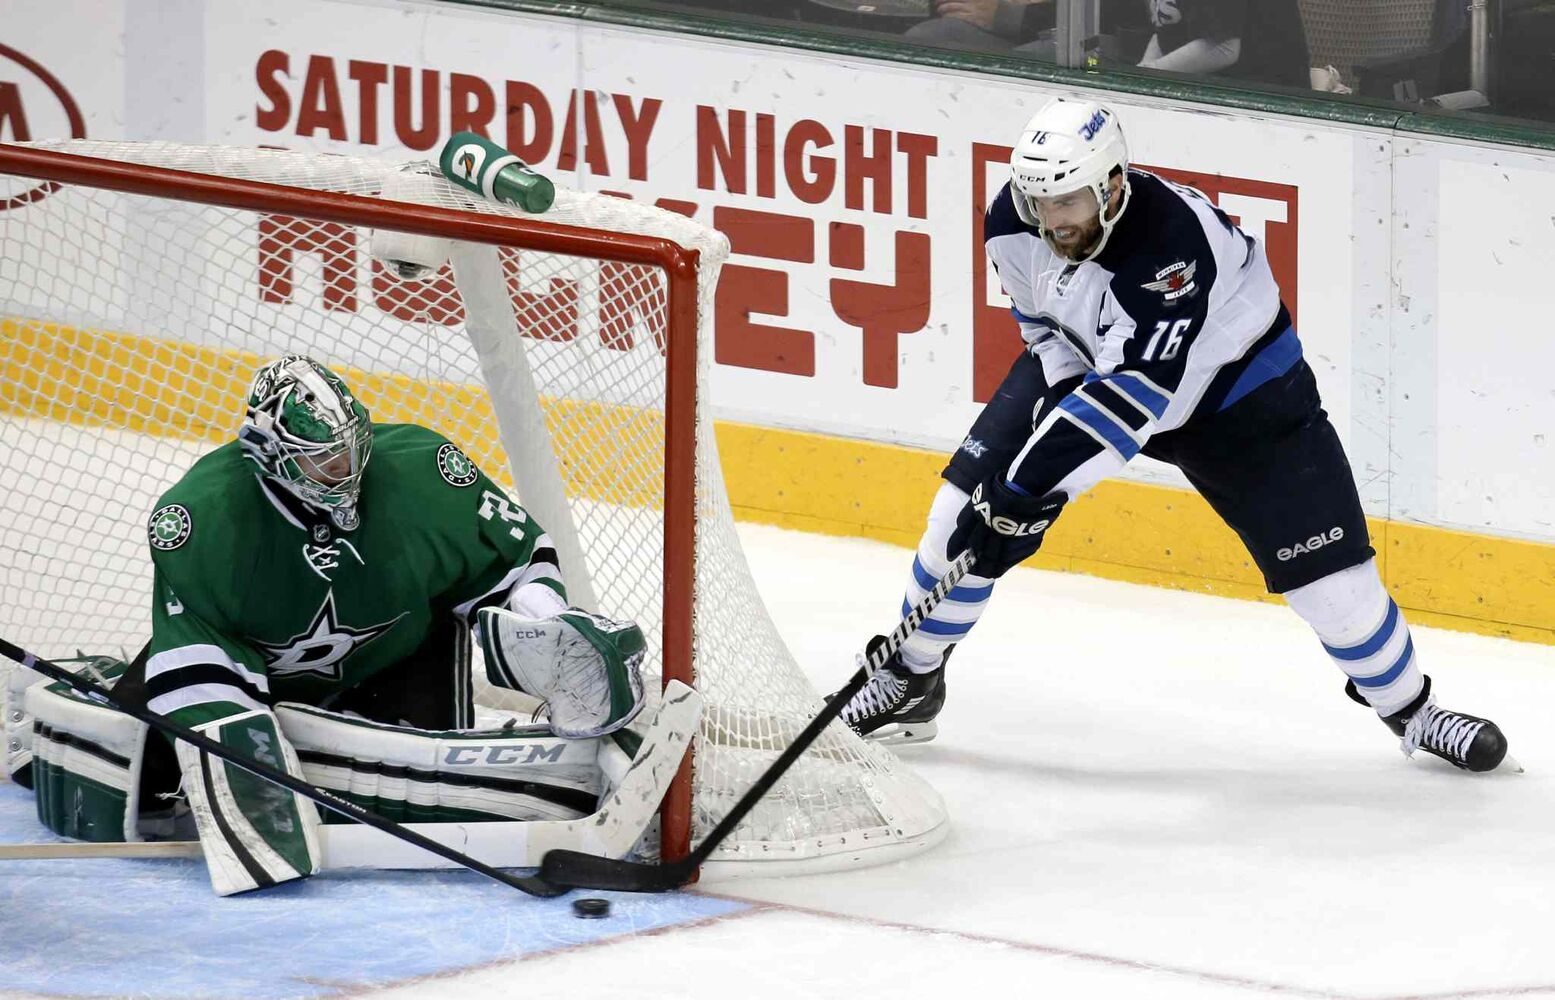 Dallas Stars goalie Kari Lehtonen blocks a shot from Andrew Ladd in the third period. (Tony Gutierrez / The Associated Press)